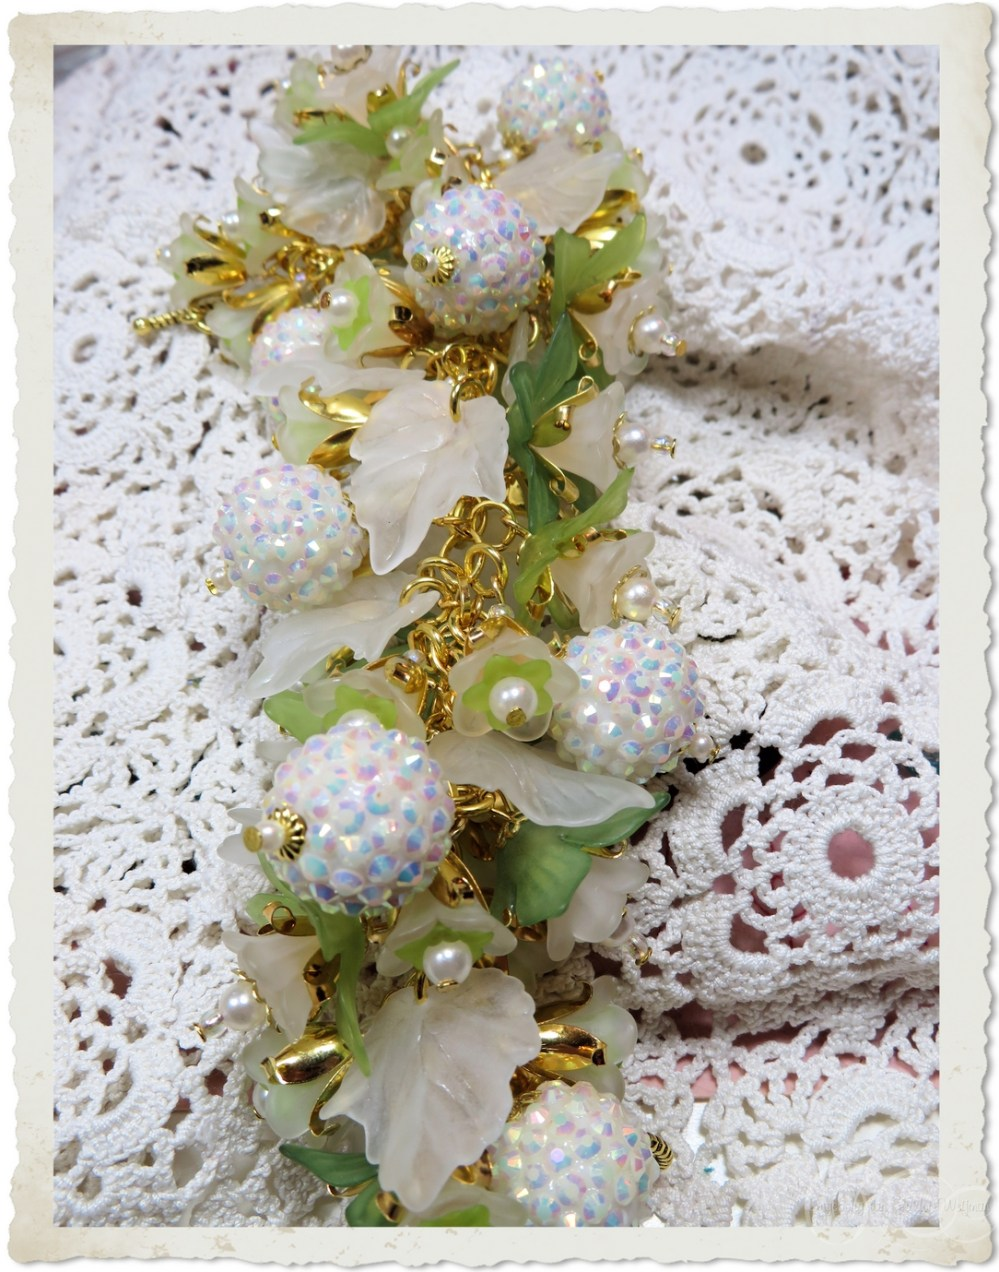 White berry beads and leaves